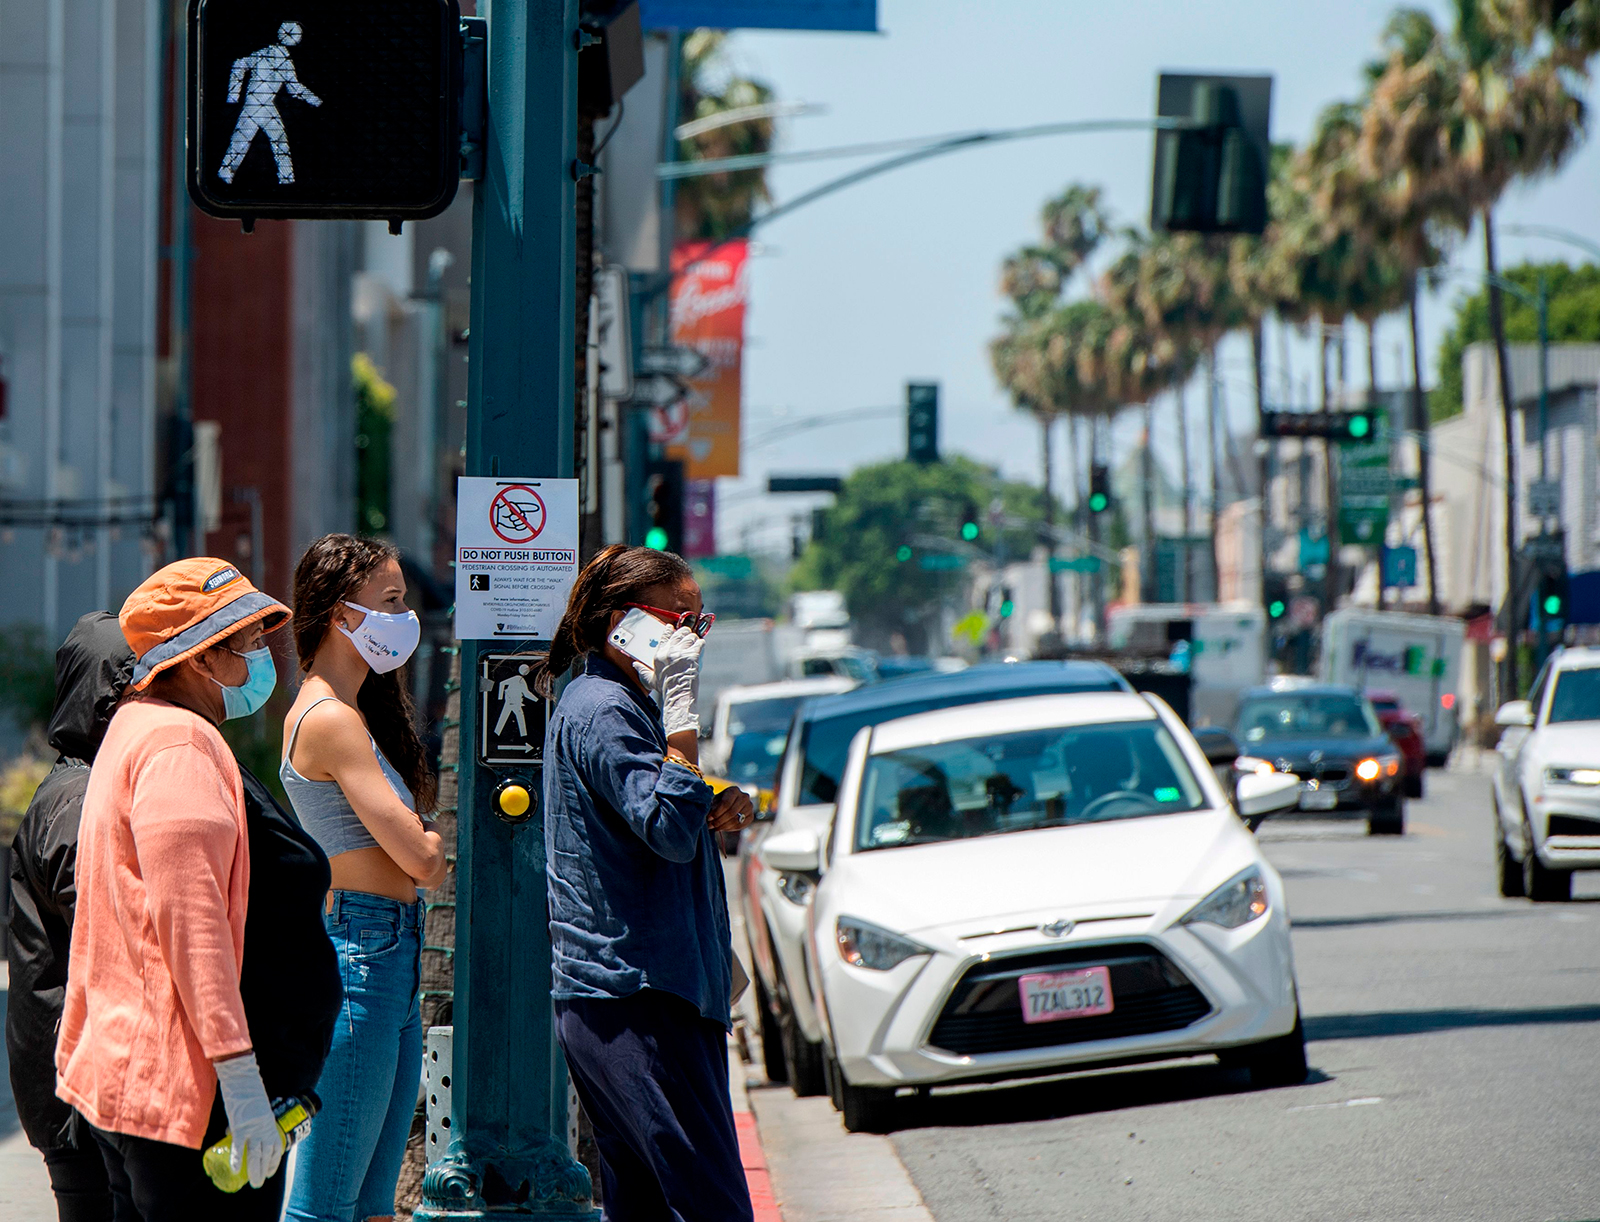 People wait to cross the street on Rodeo Drive where a sign is displayed asking pedestrians not to push the crosswalk button, on May 26, in Beverly Hills, California.